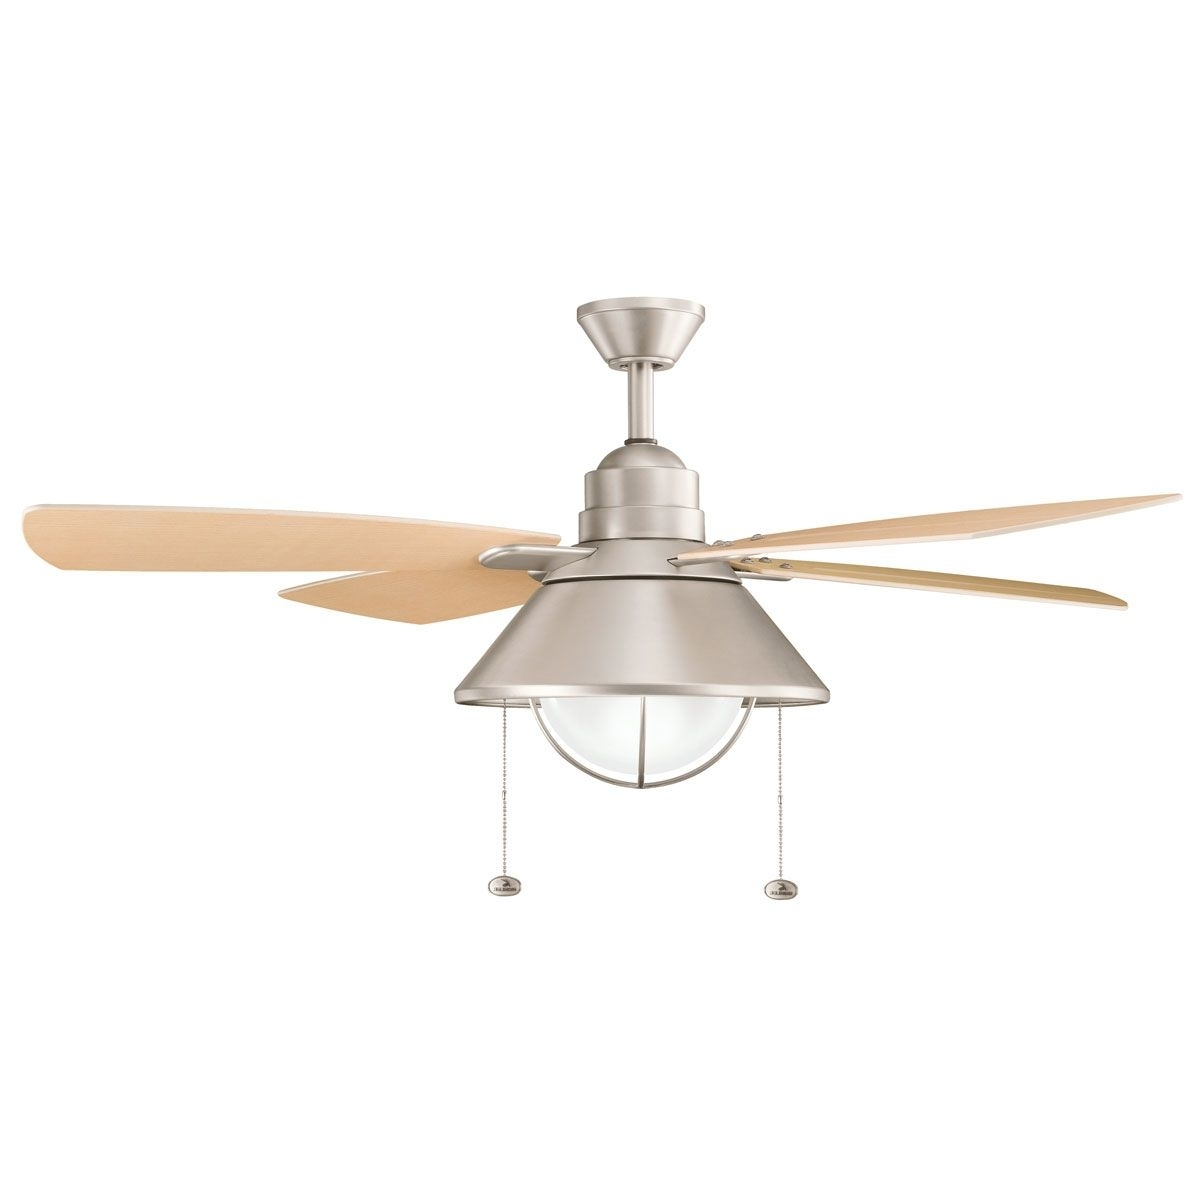 Newest Coastal Outdoor Ceiling Fans Pertaining To Kichler Fans Seaside Ceiling Fan In Brushed Nickel (Gallery 5 of 20)